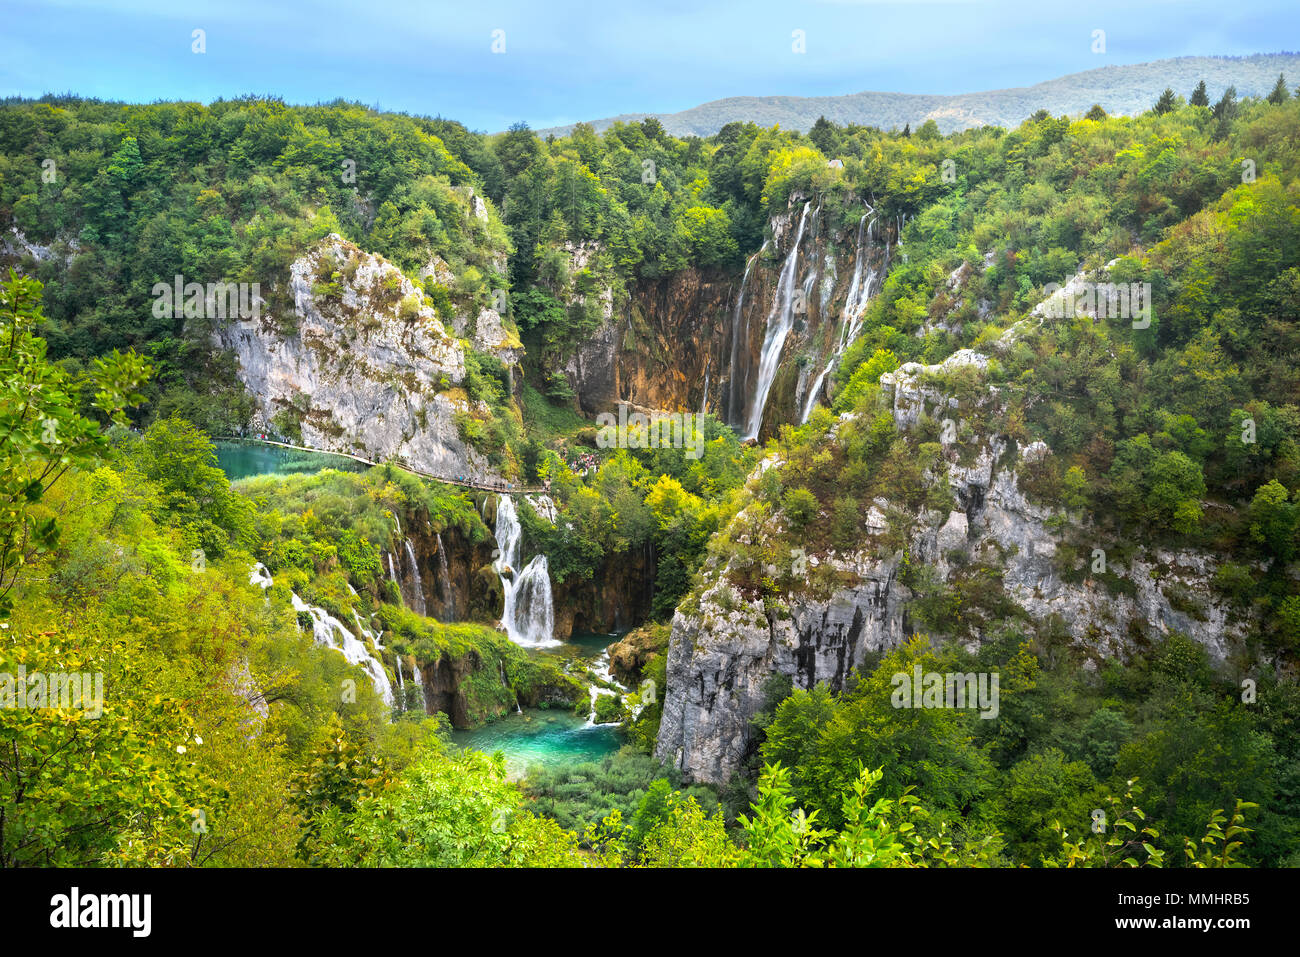 Landscape with beautiful waterfalls in Plitvice National Park. Croatia - Stock Image